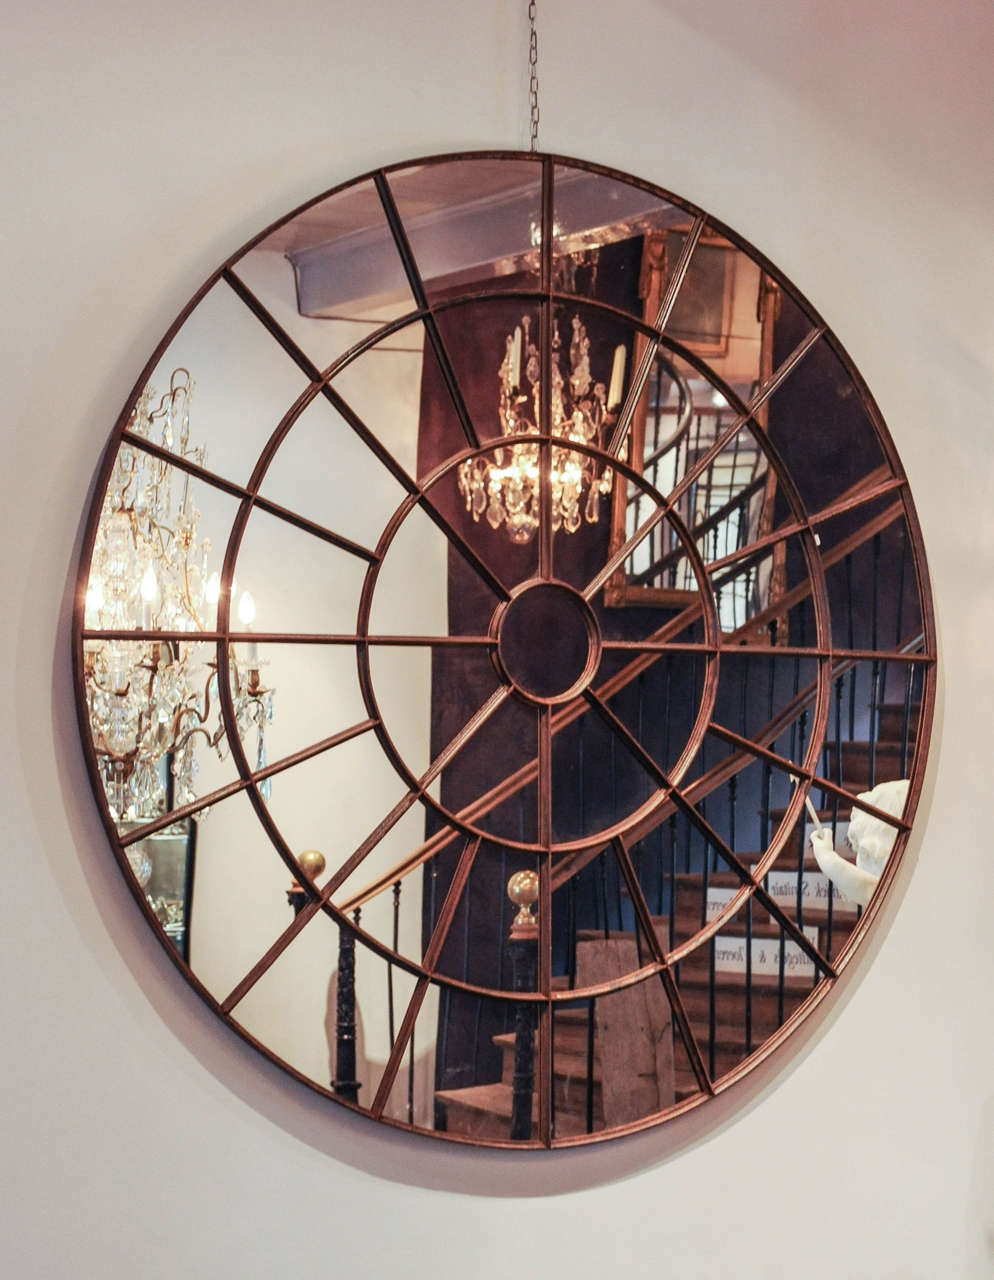 Large Round Mirror Made Of An Early 20th Century Cast Iron Window Regarding Large Circle Mirrors (View 9 of 15)